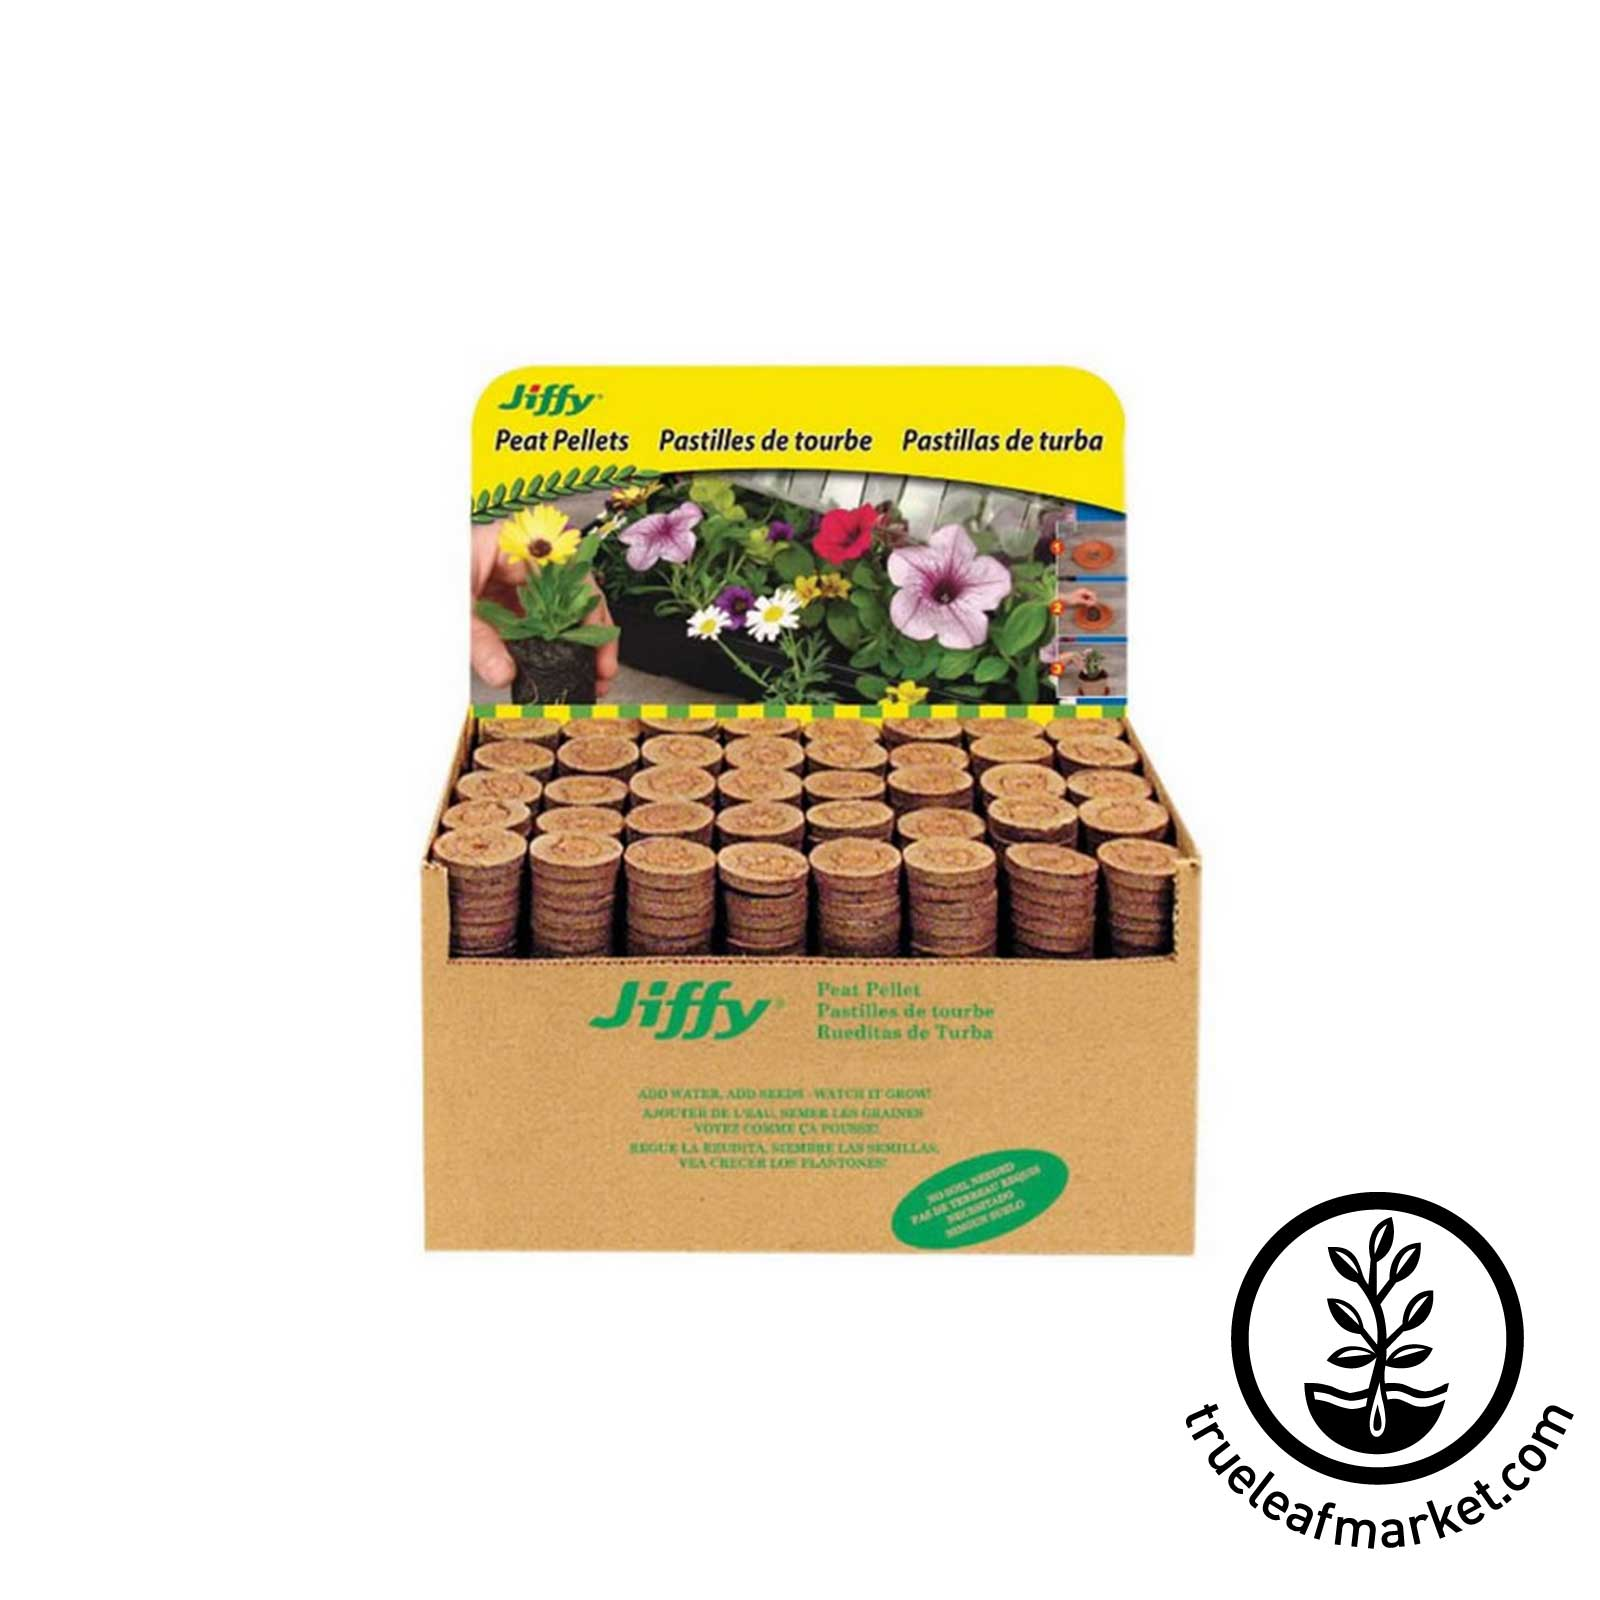 jiffy pellets for growing